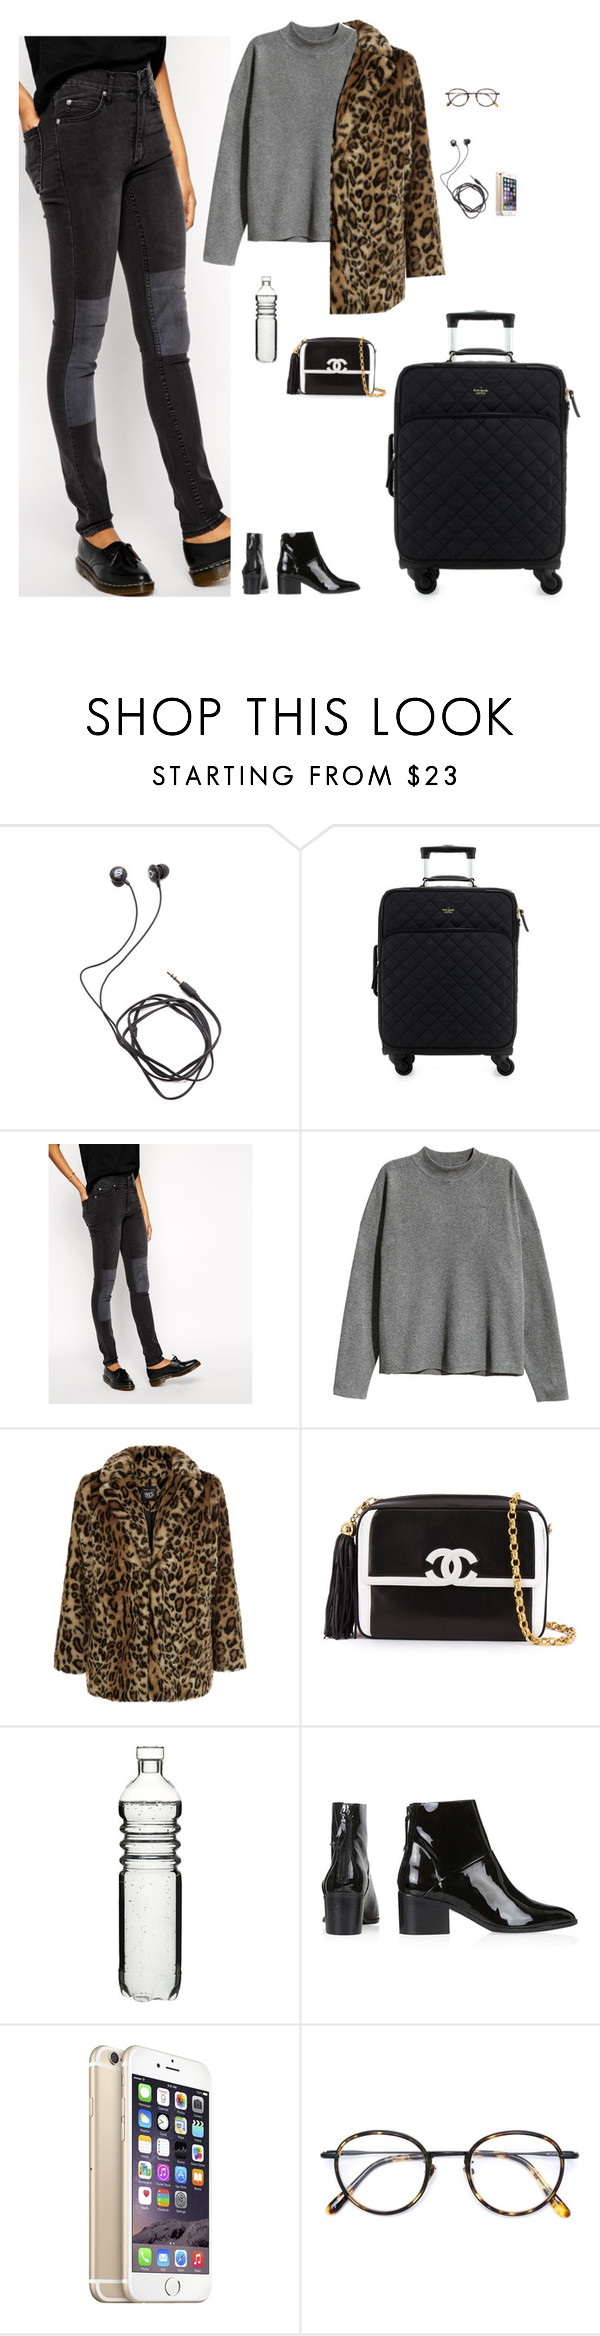 """""""Untitled #2027"""" by tayloremily218 on Polyvore featuring Diane Von Furstenberg, Kate Spade, Cheap Monday, H&M, New Look, Chanel, Dot & Bo, Topshop and Frency & Mercury"""